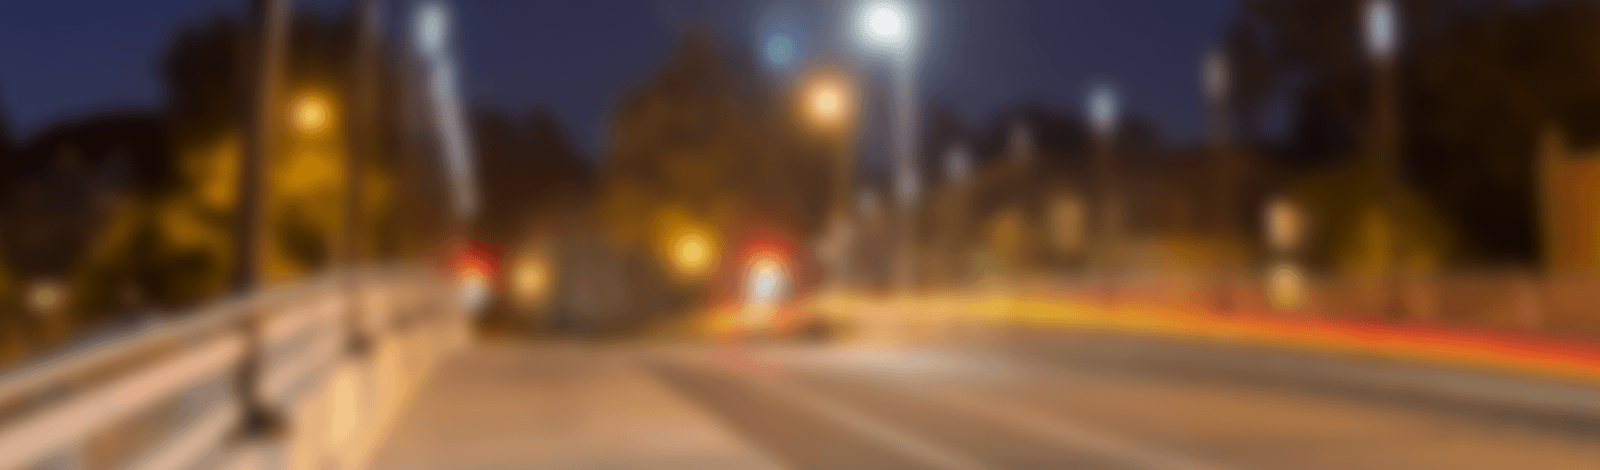 slide2_Layer_5